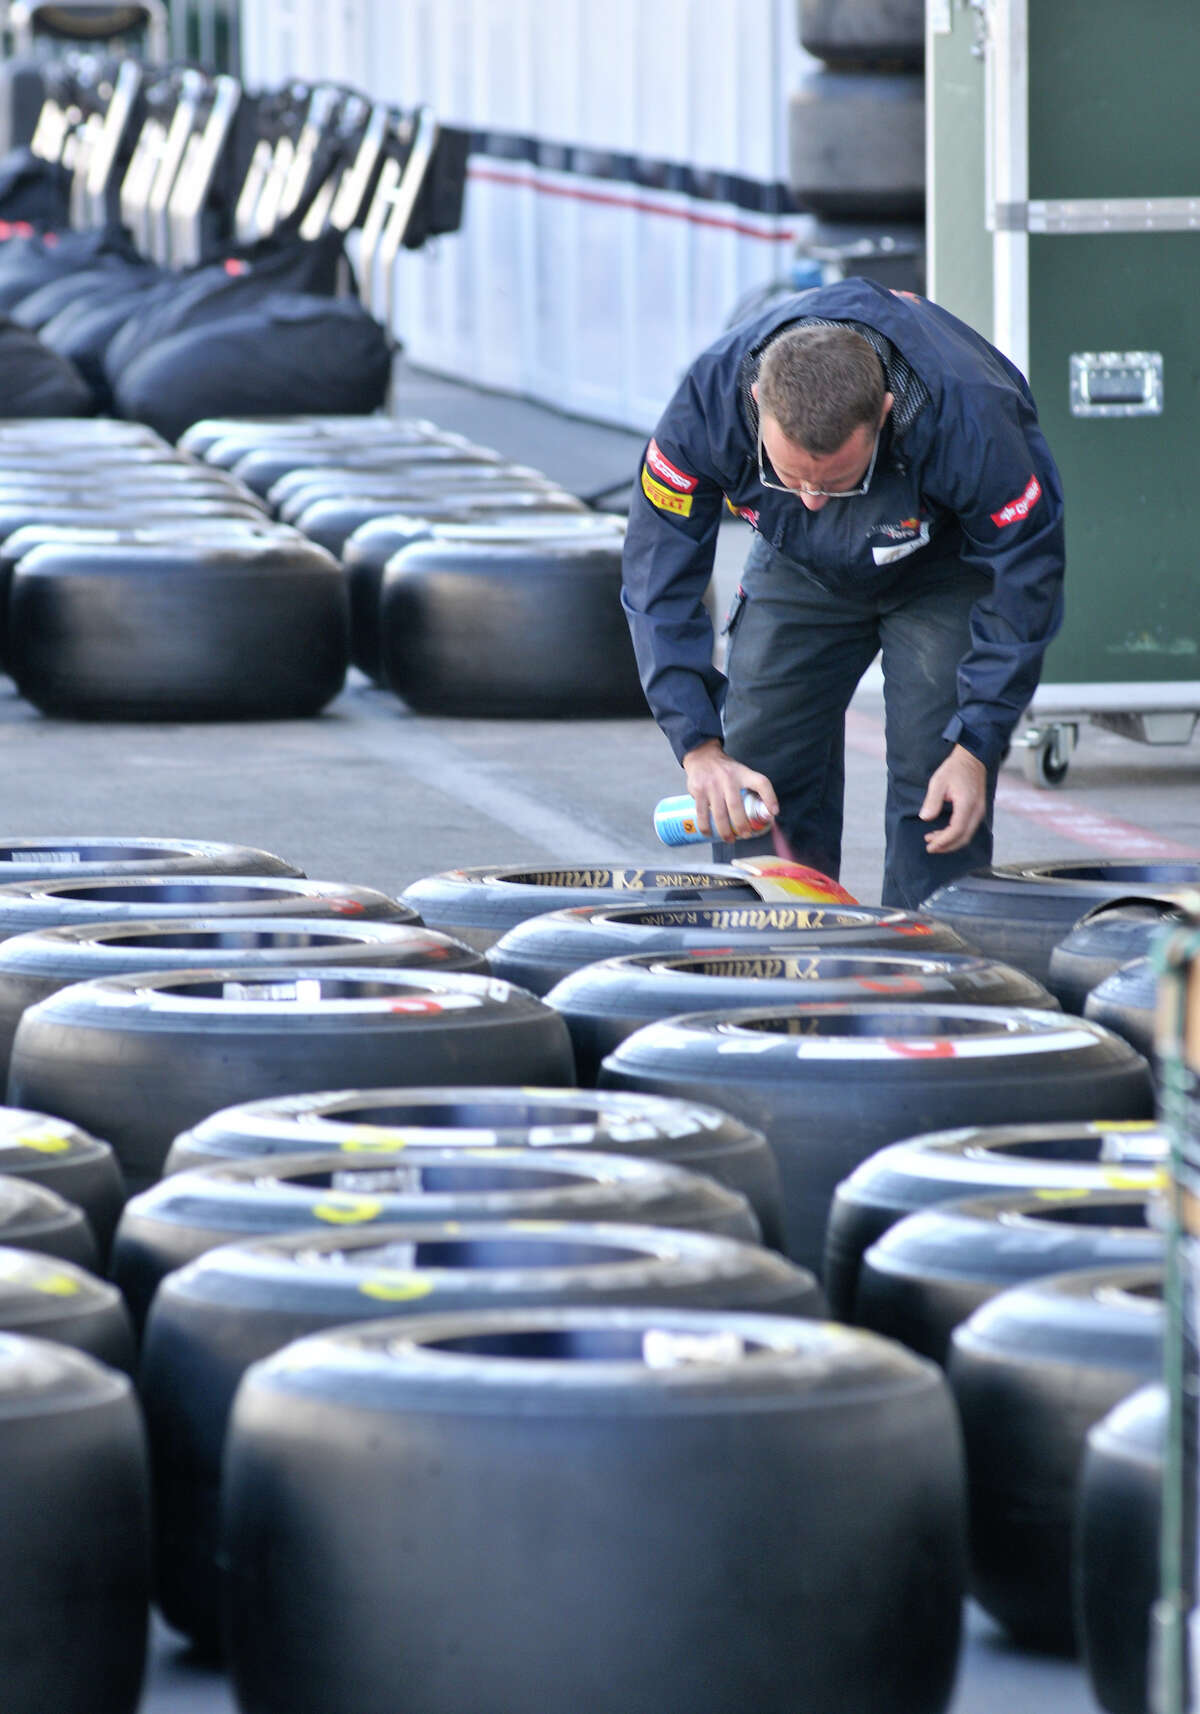 A crewman does preperation work as Formula 1 race teams set up Wednesday at Austin's Circuit of the America's for Sunday's United States Grand Prix. San Antonio businessman Red McCombs the major investor in the track.